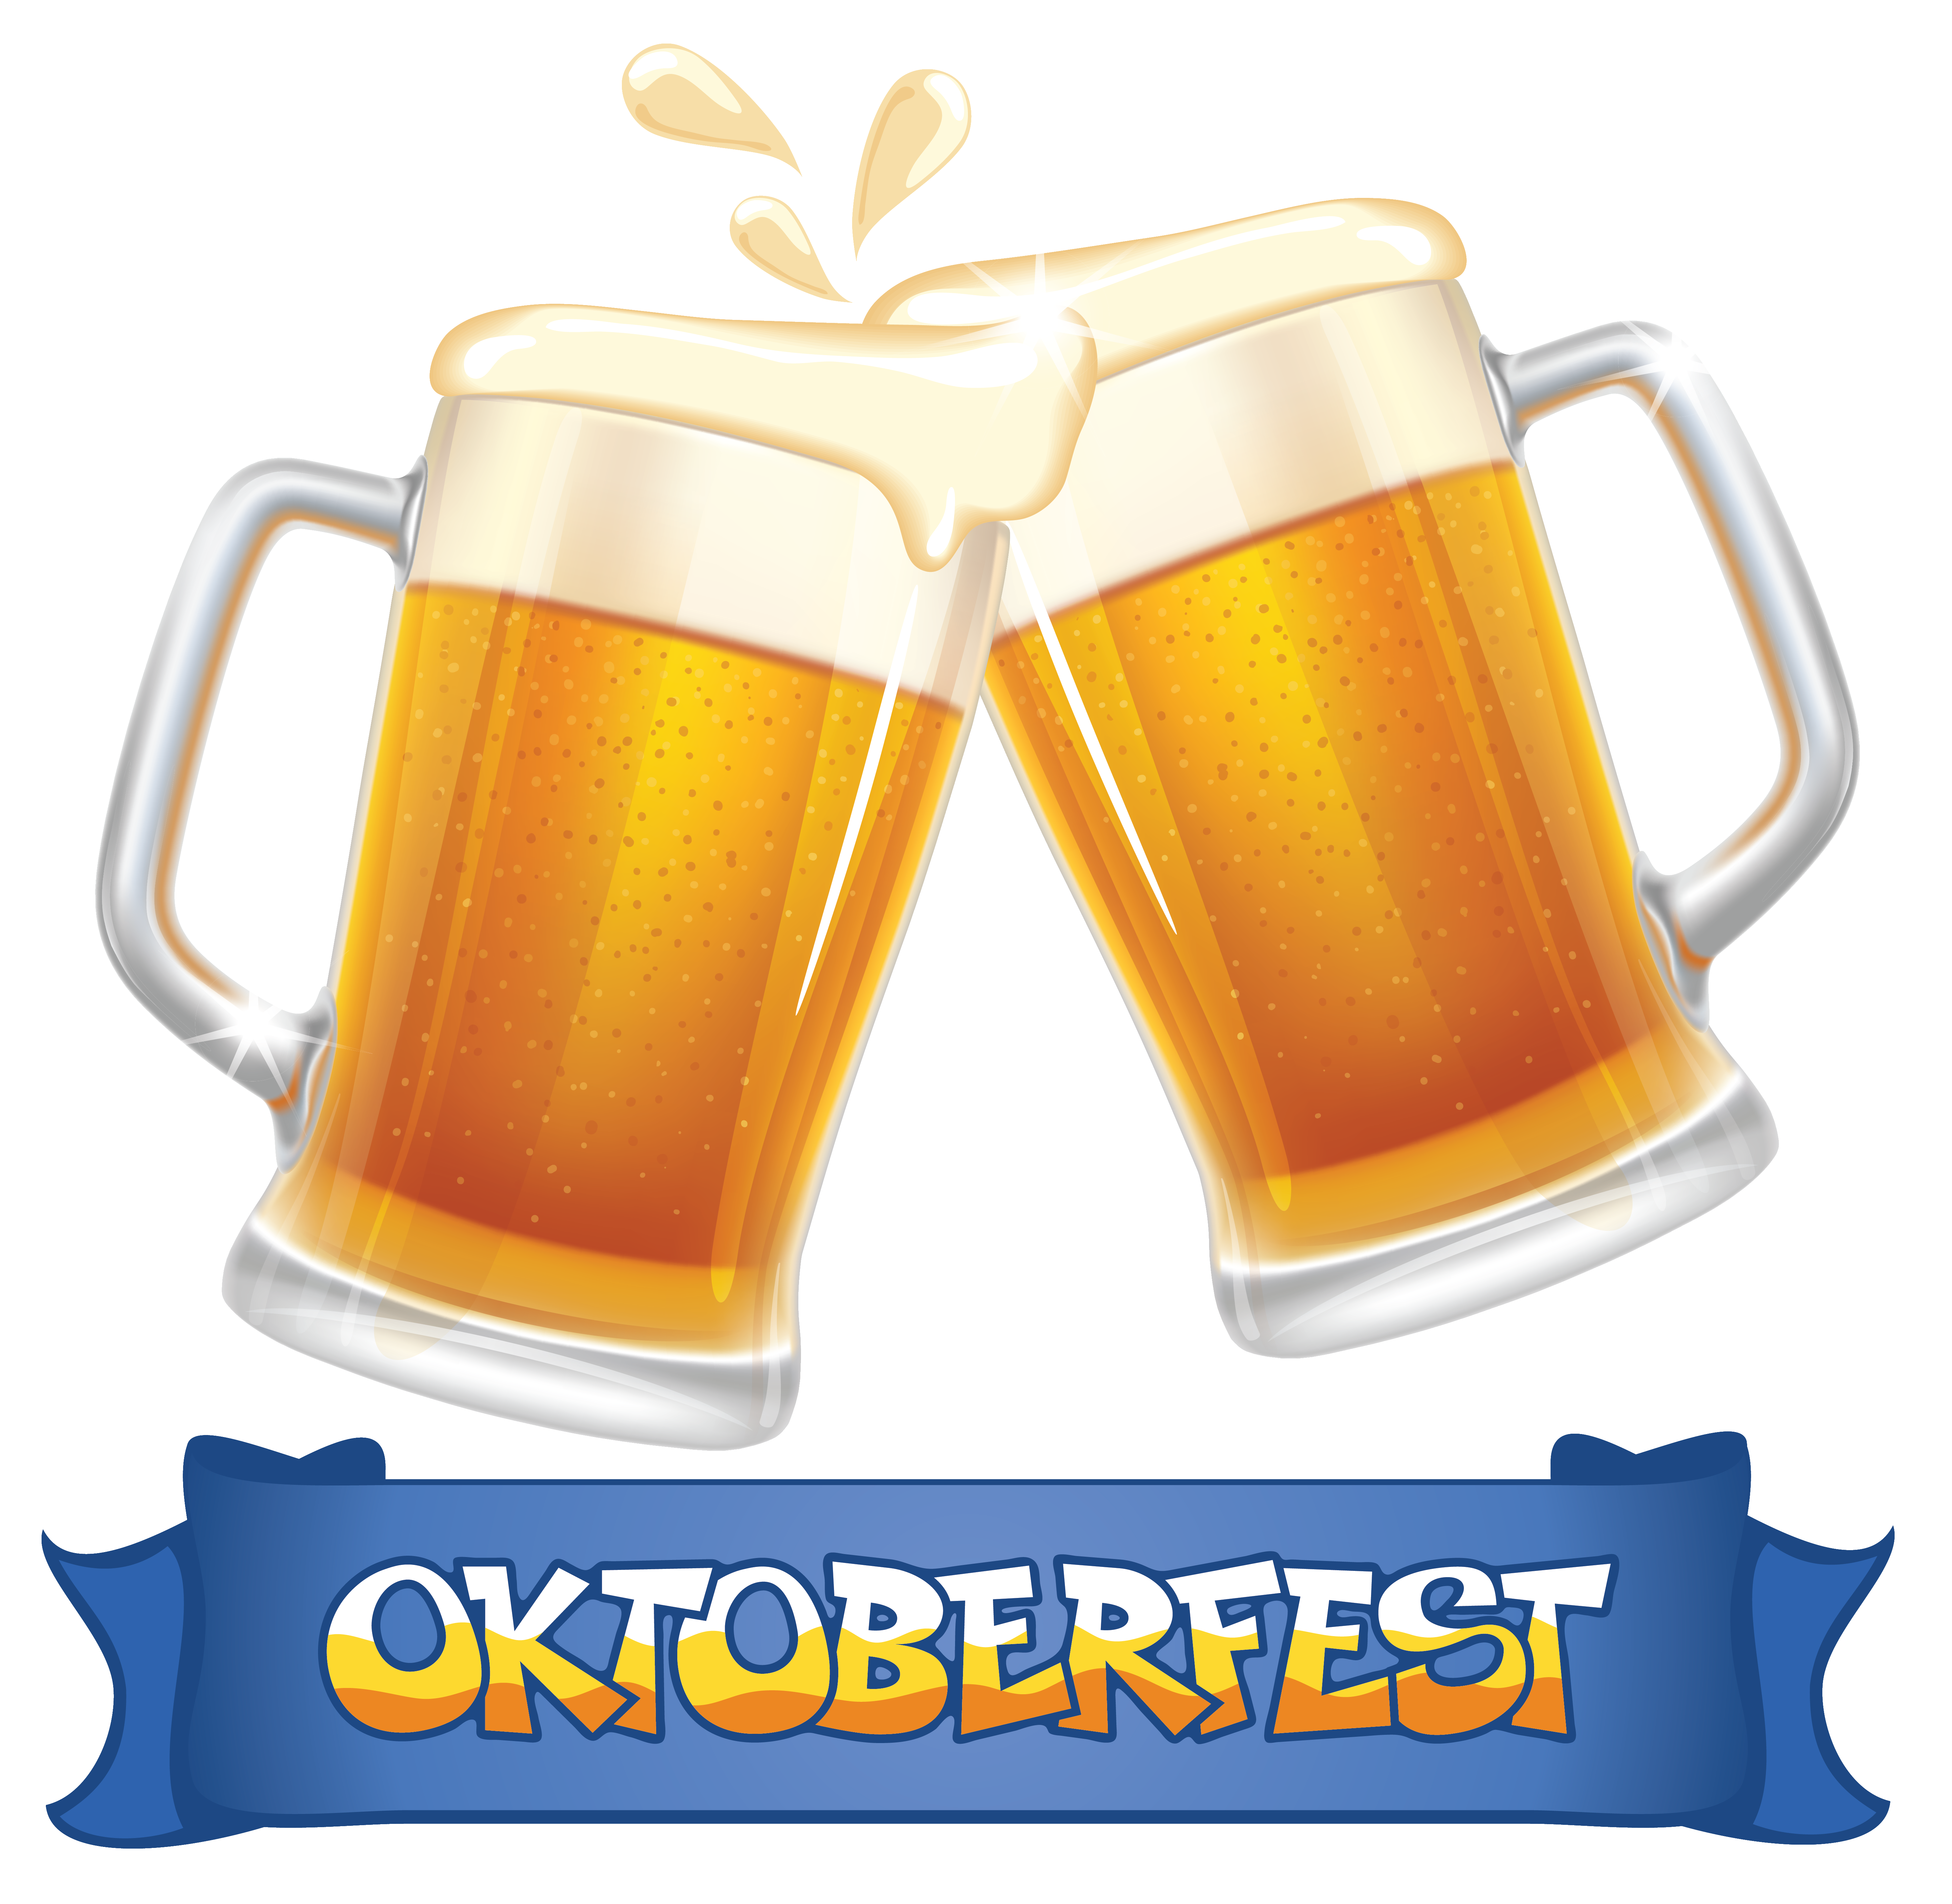 Oktoberfest Blue Banner and Beers PNG Clipart Image.